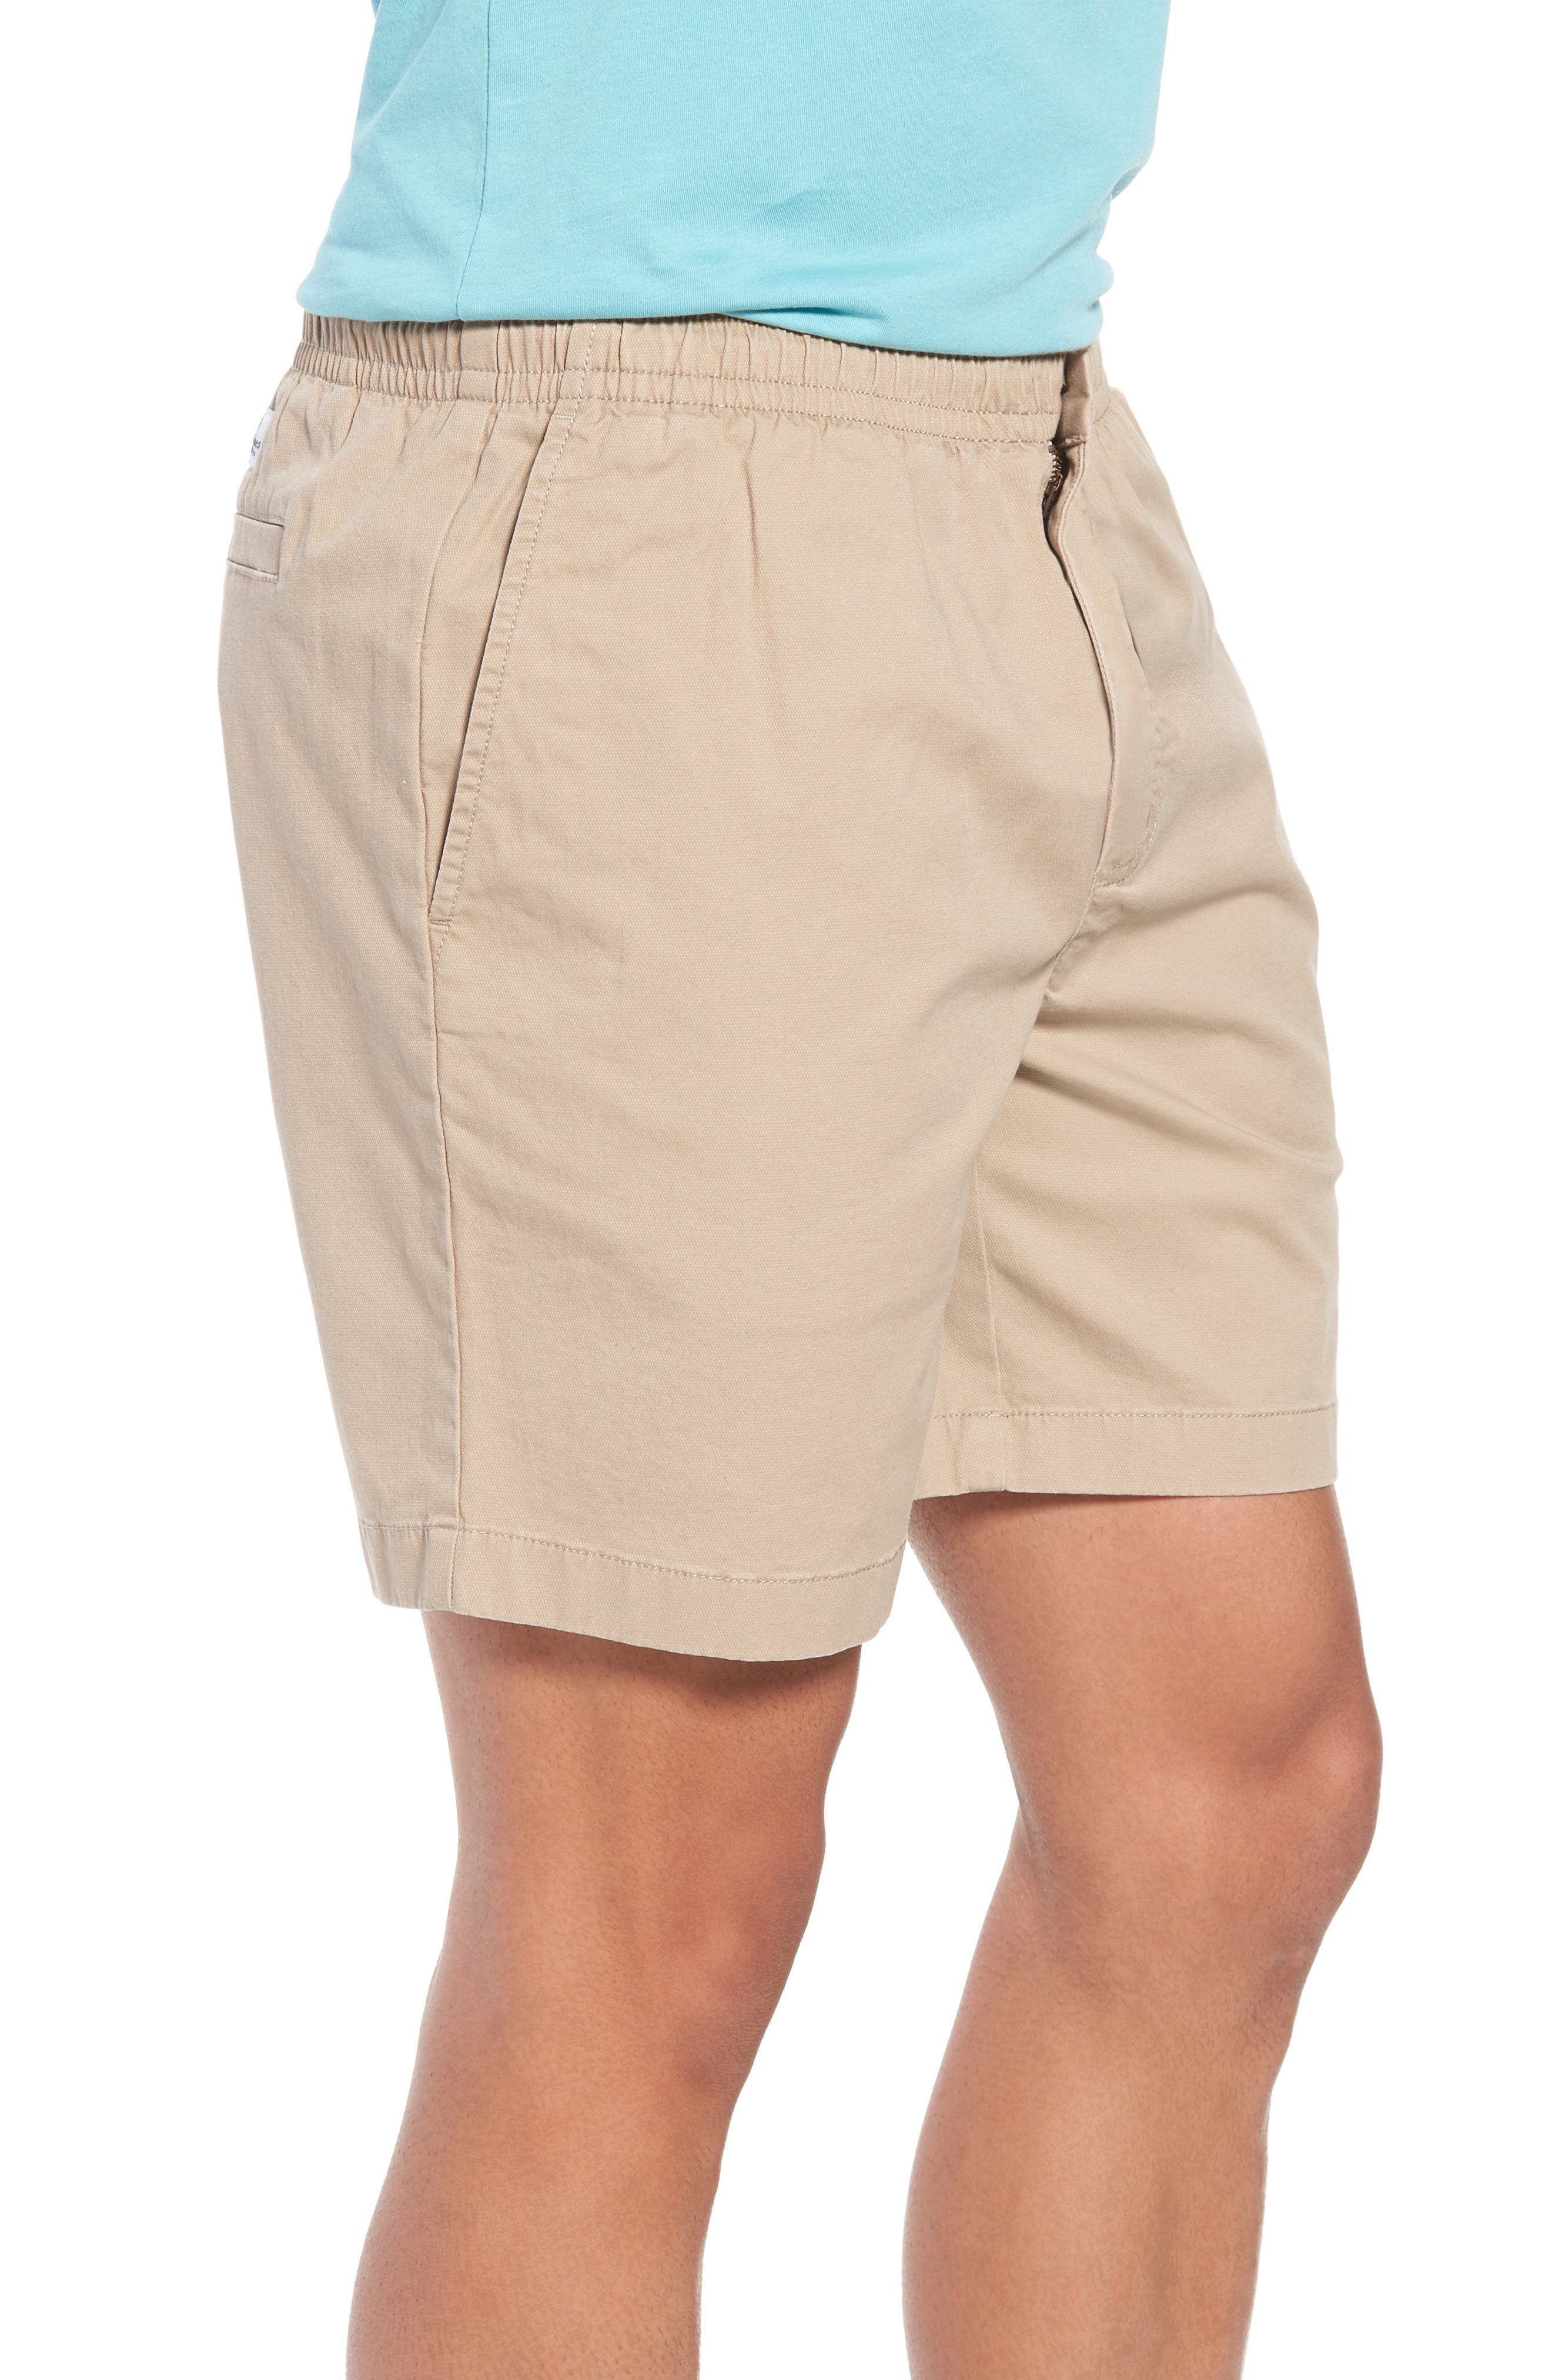 Jetty Stretch Cotton Shorts,                             Alternate thumbnail 3, color,                             250